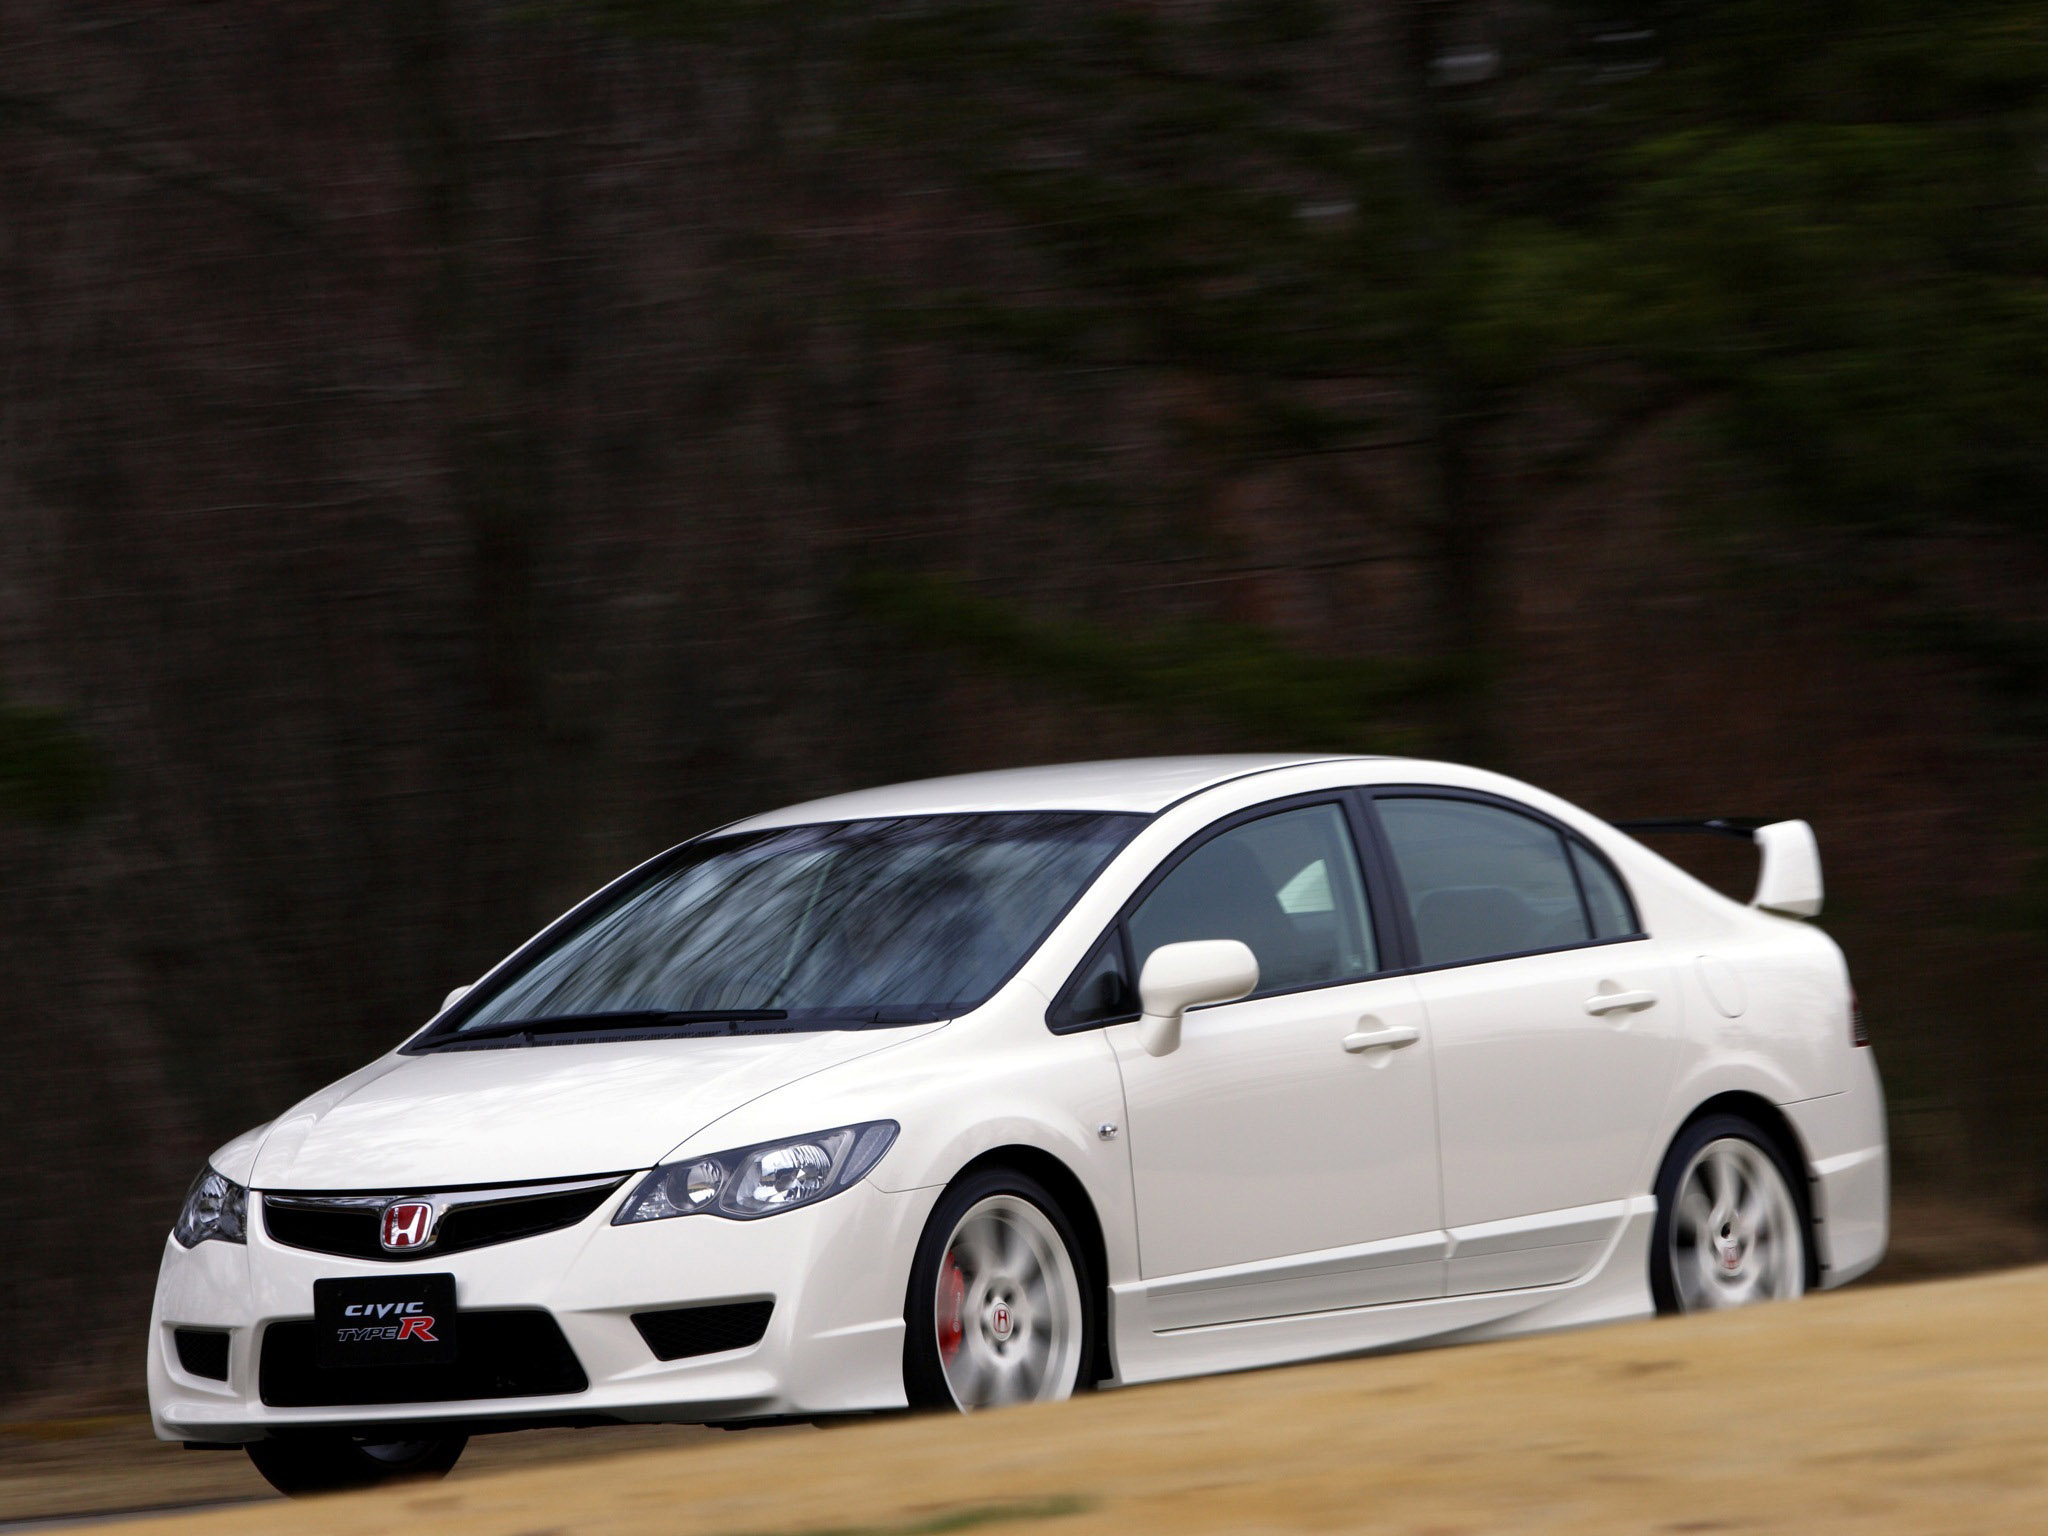 honda civic type r sedan 2007 honda civic type r sedan 2007 photo 04 car in pictures car. Black Bedroom Furniture Sets. Home Design Ideas